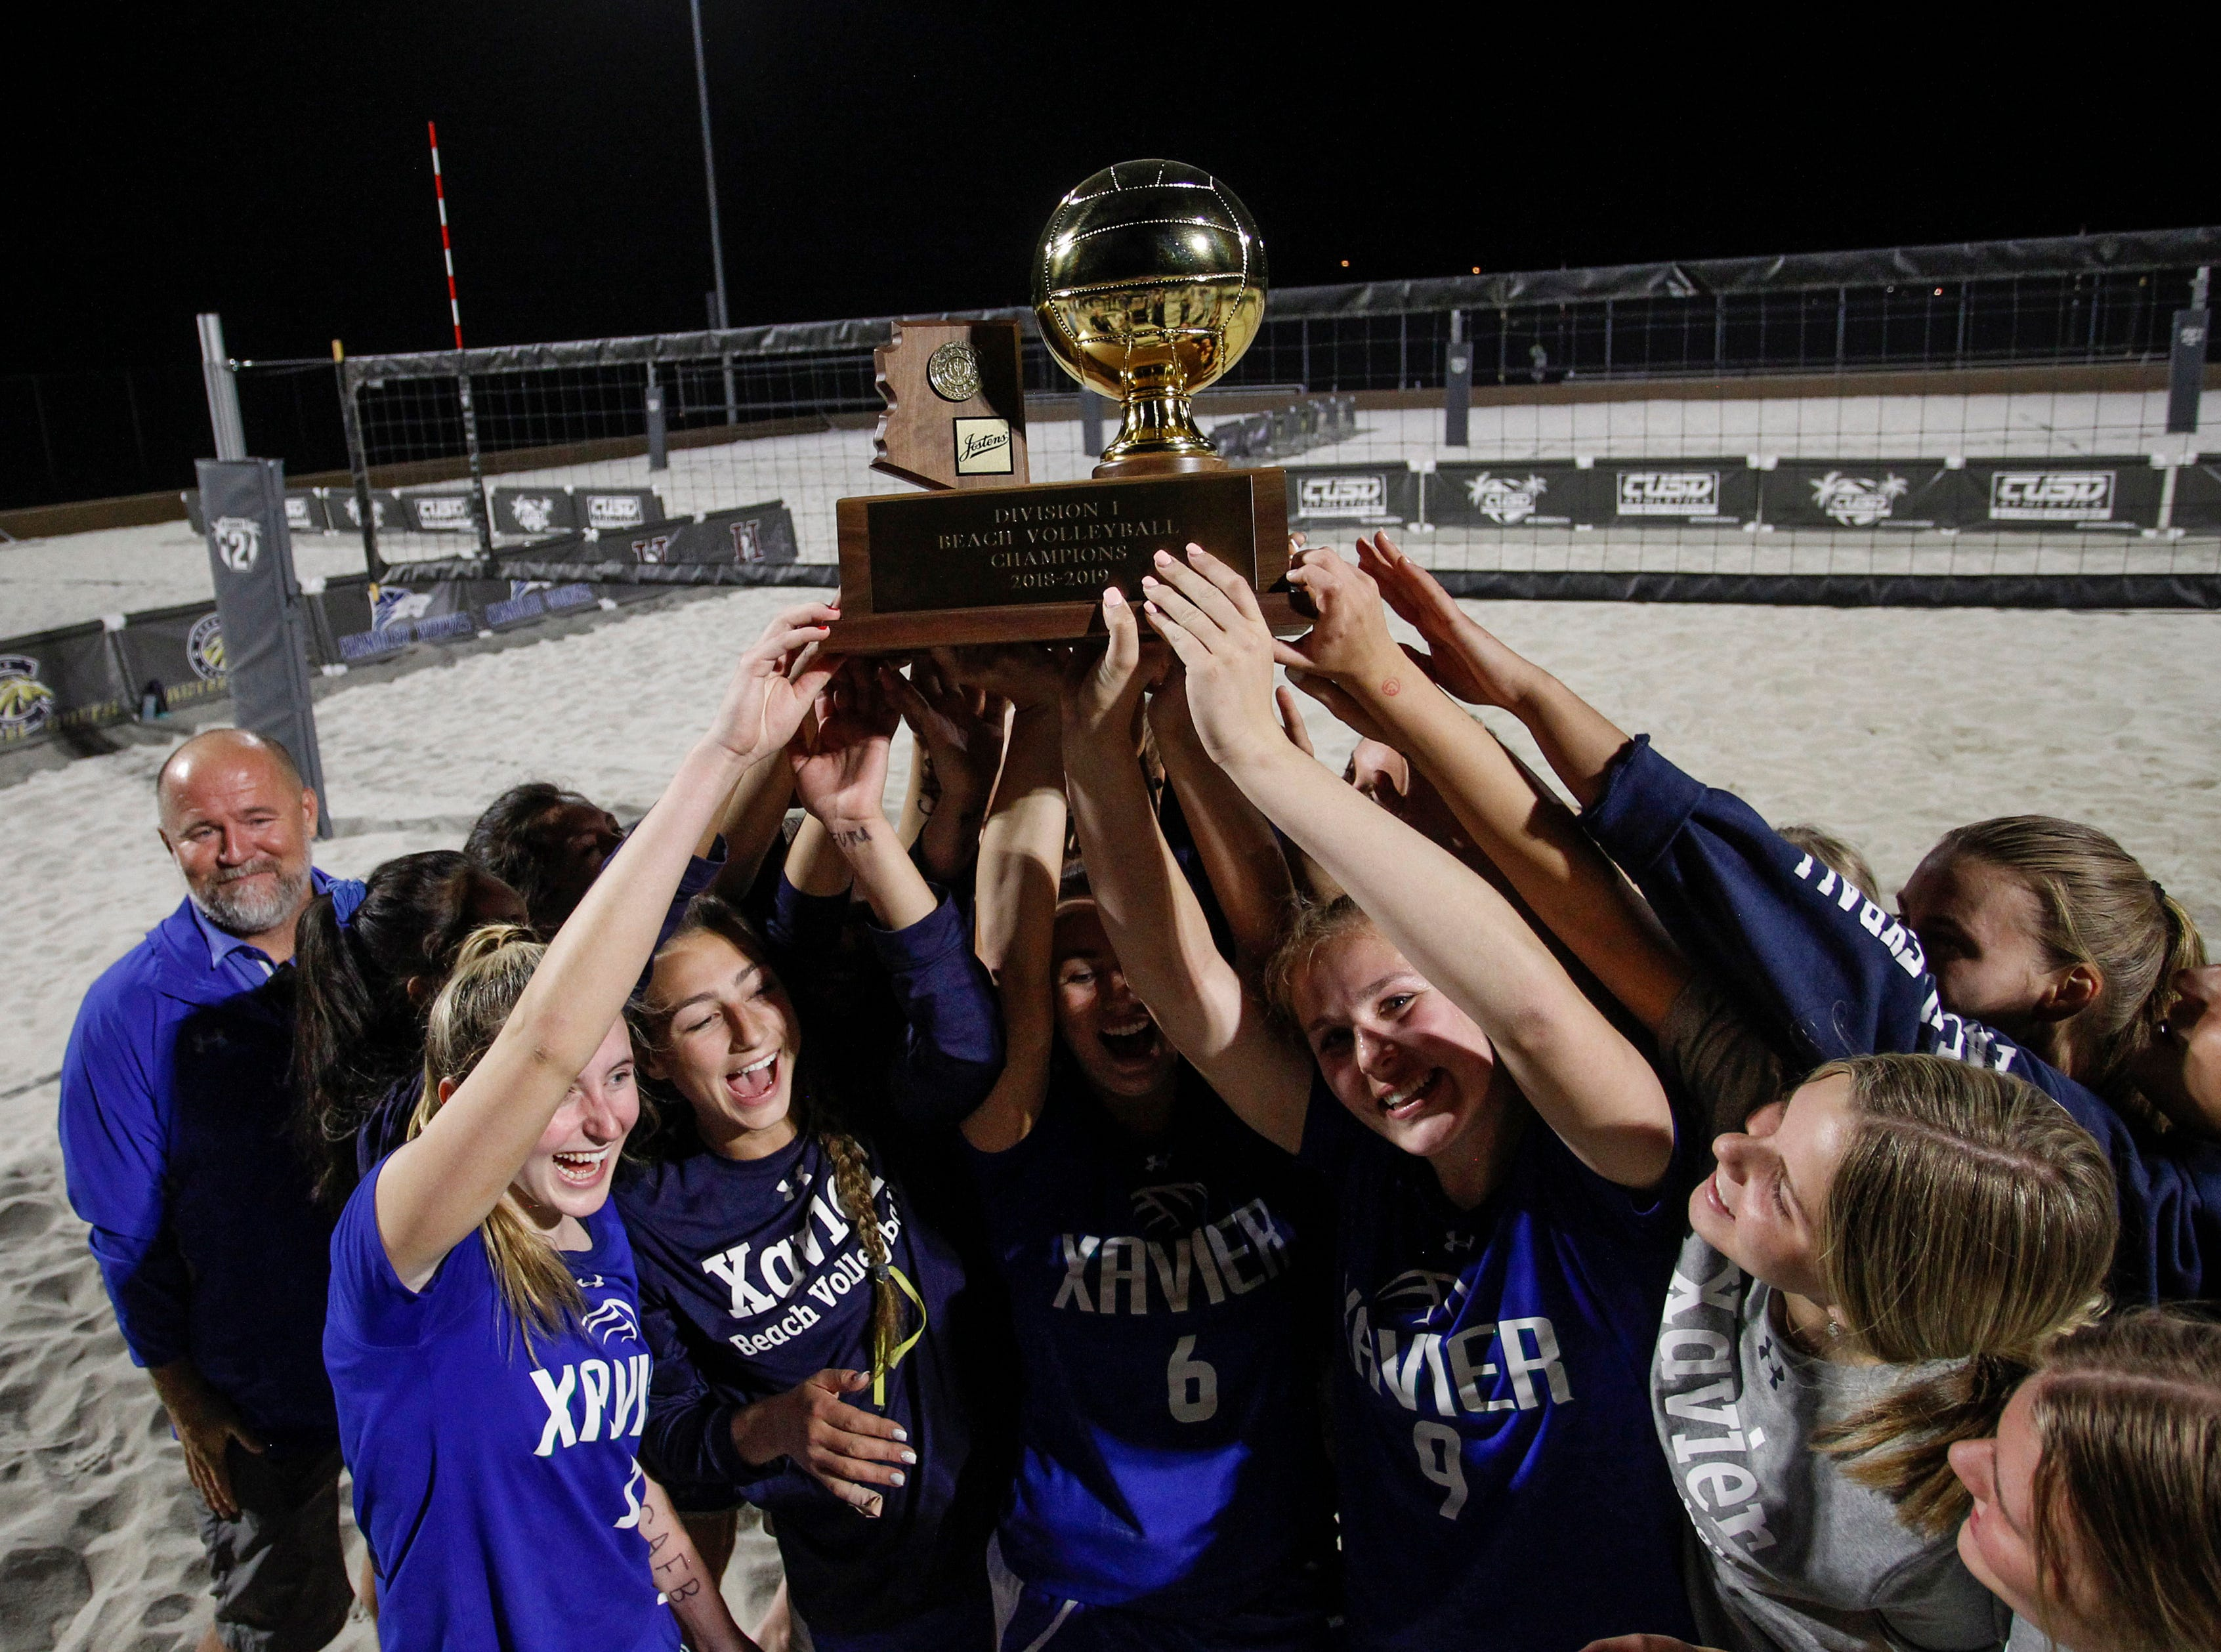 Xavier Prep players hold up the gold ball after winning the Division 1 Team Beach Volleyball State Championships over Perry High School at Casteel High School in Queen Creek, Arizona, May 02, 2019.